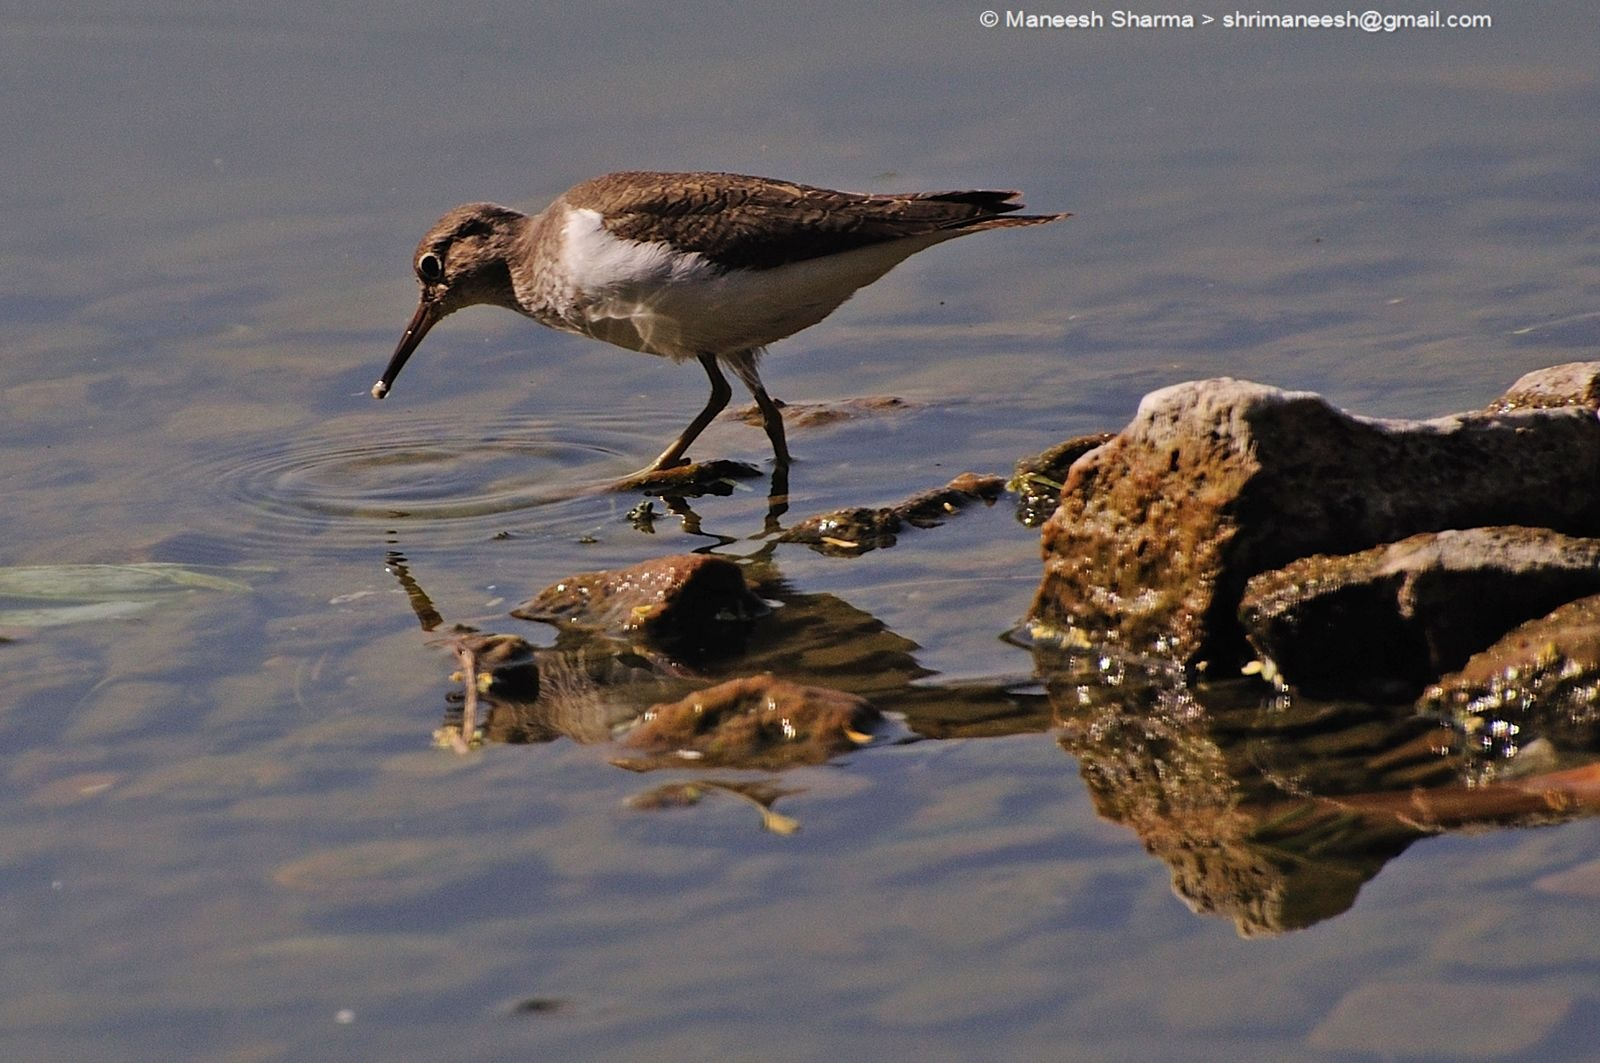 Common sandpiper...Scientific name: Actitis hypoleucos by Maneesh Sharma